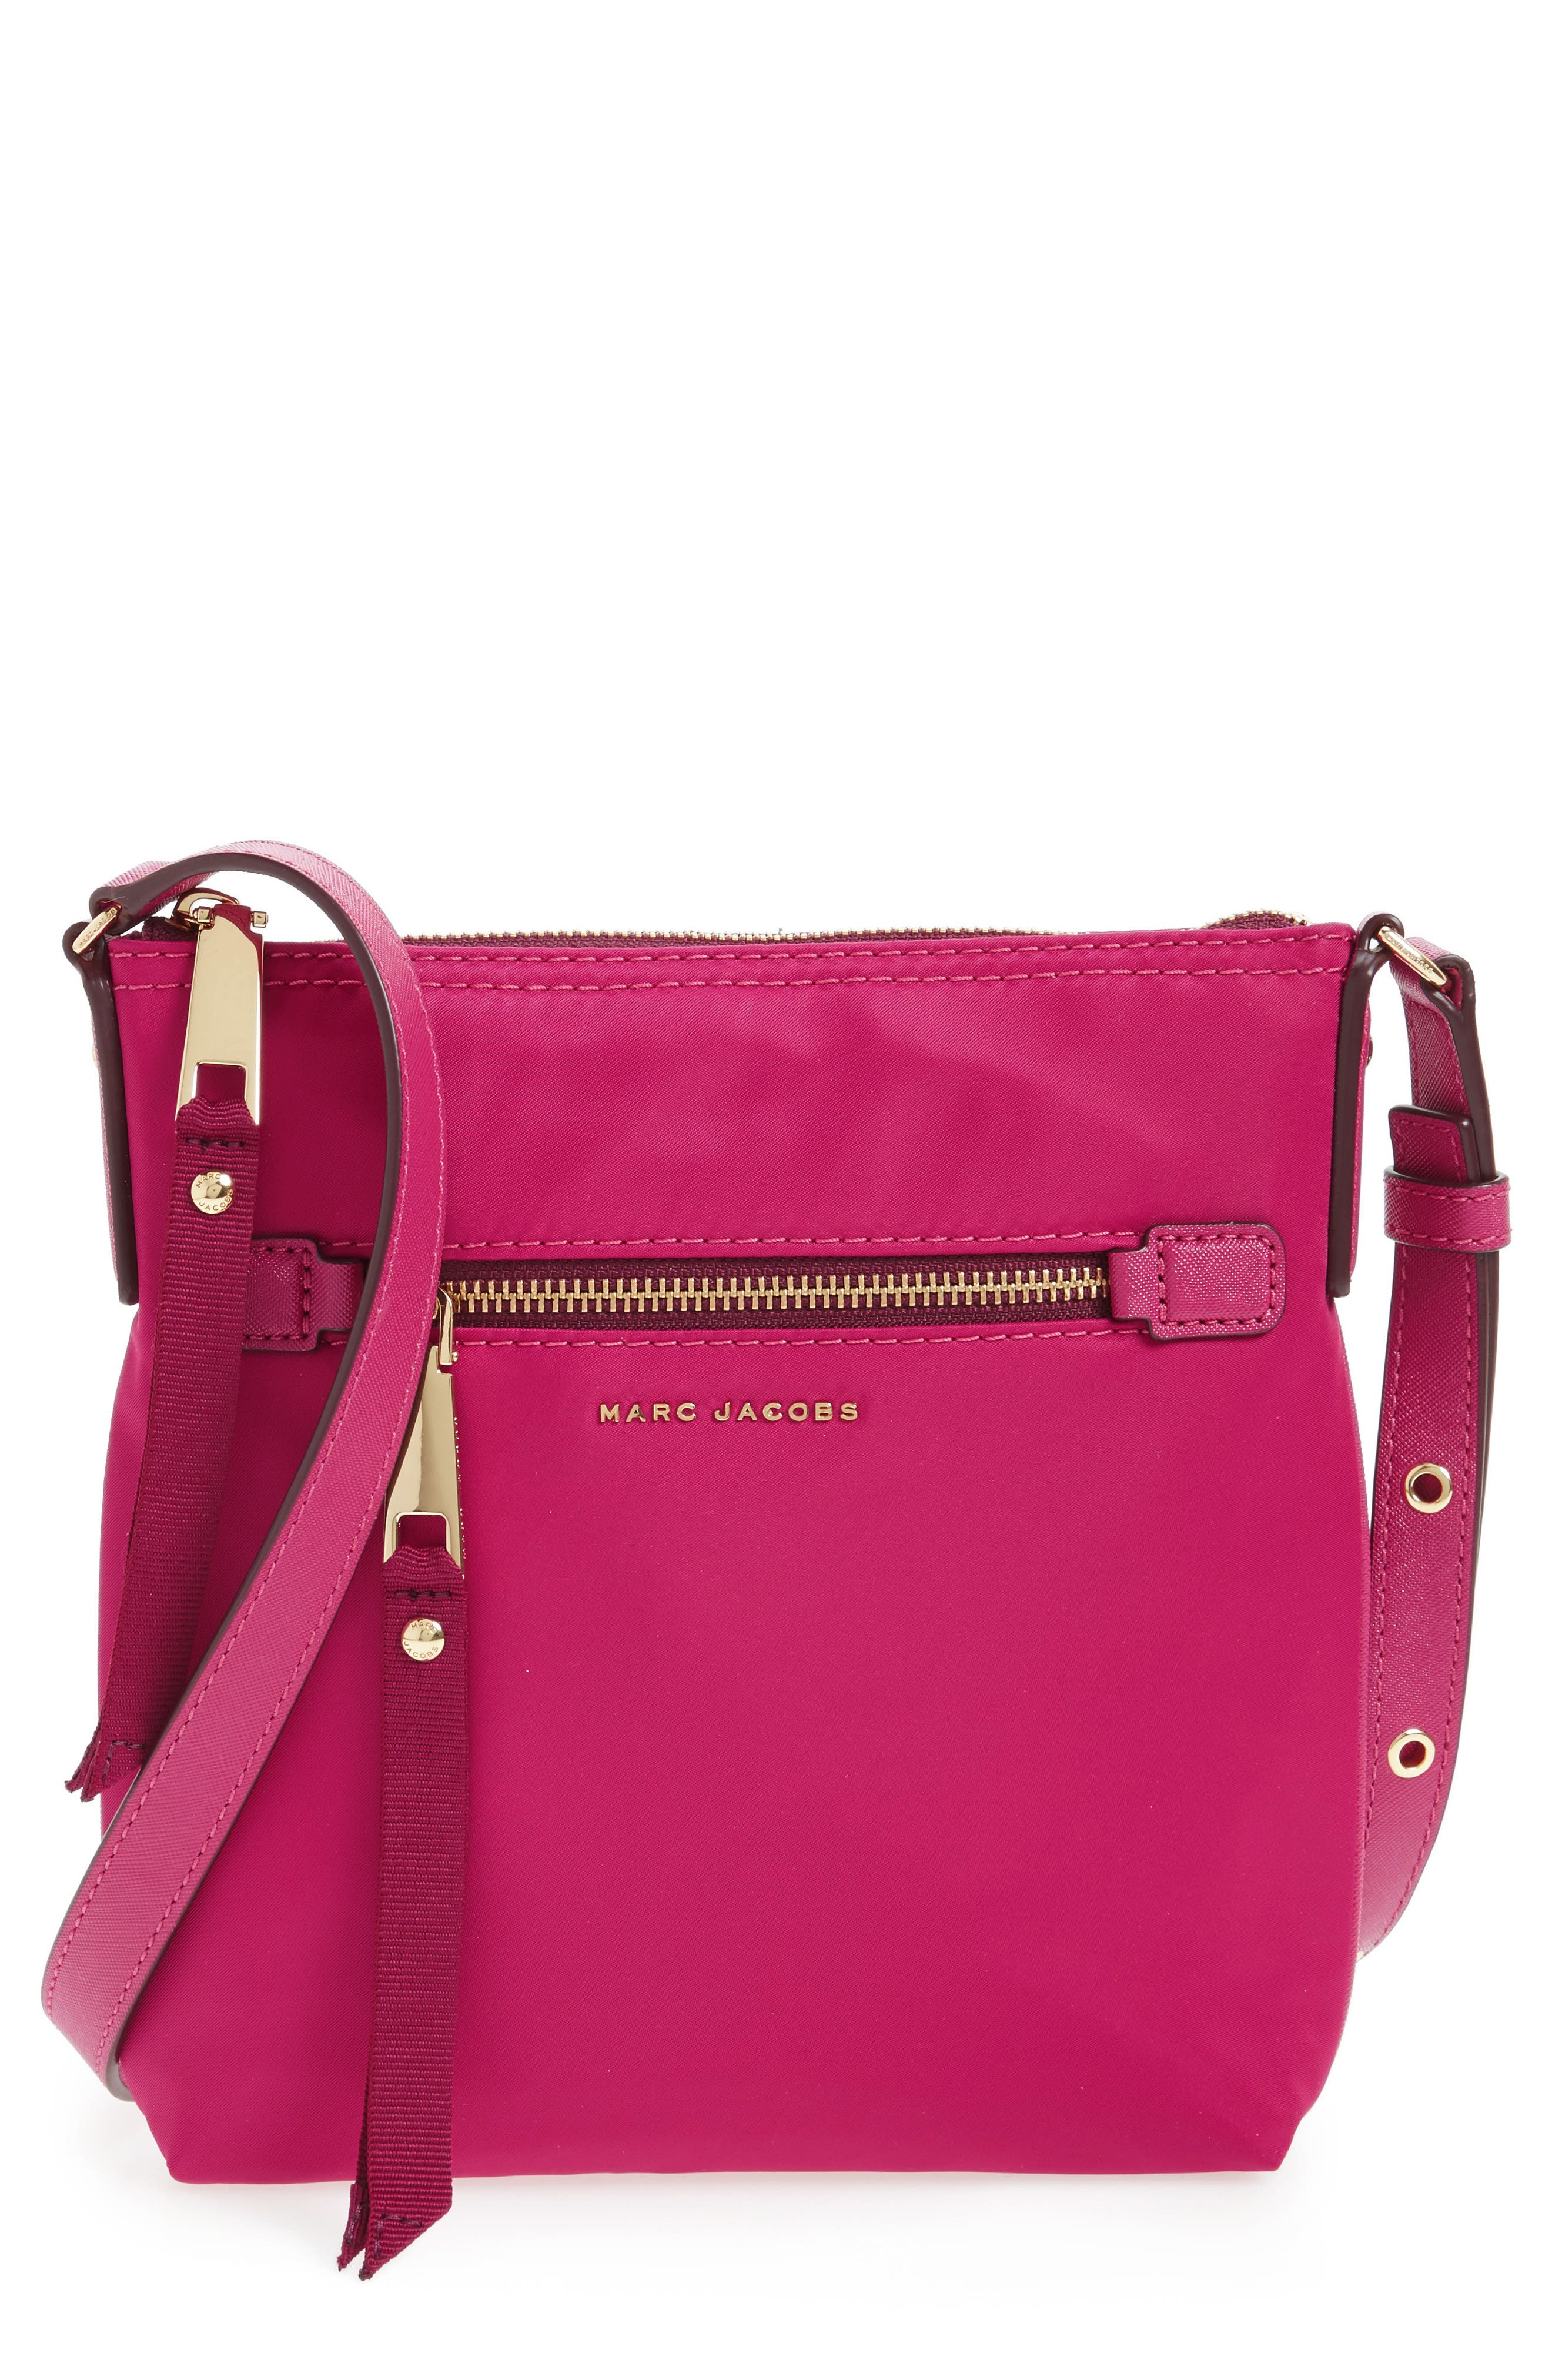 MARC JACOBS Trooper Nylon Crossbody Bag